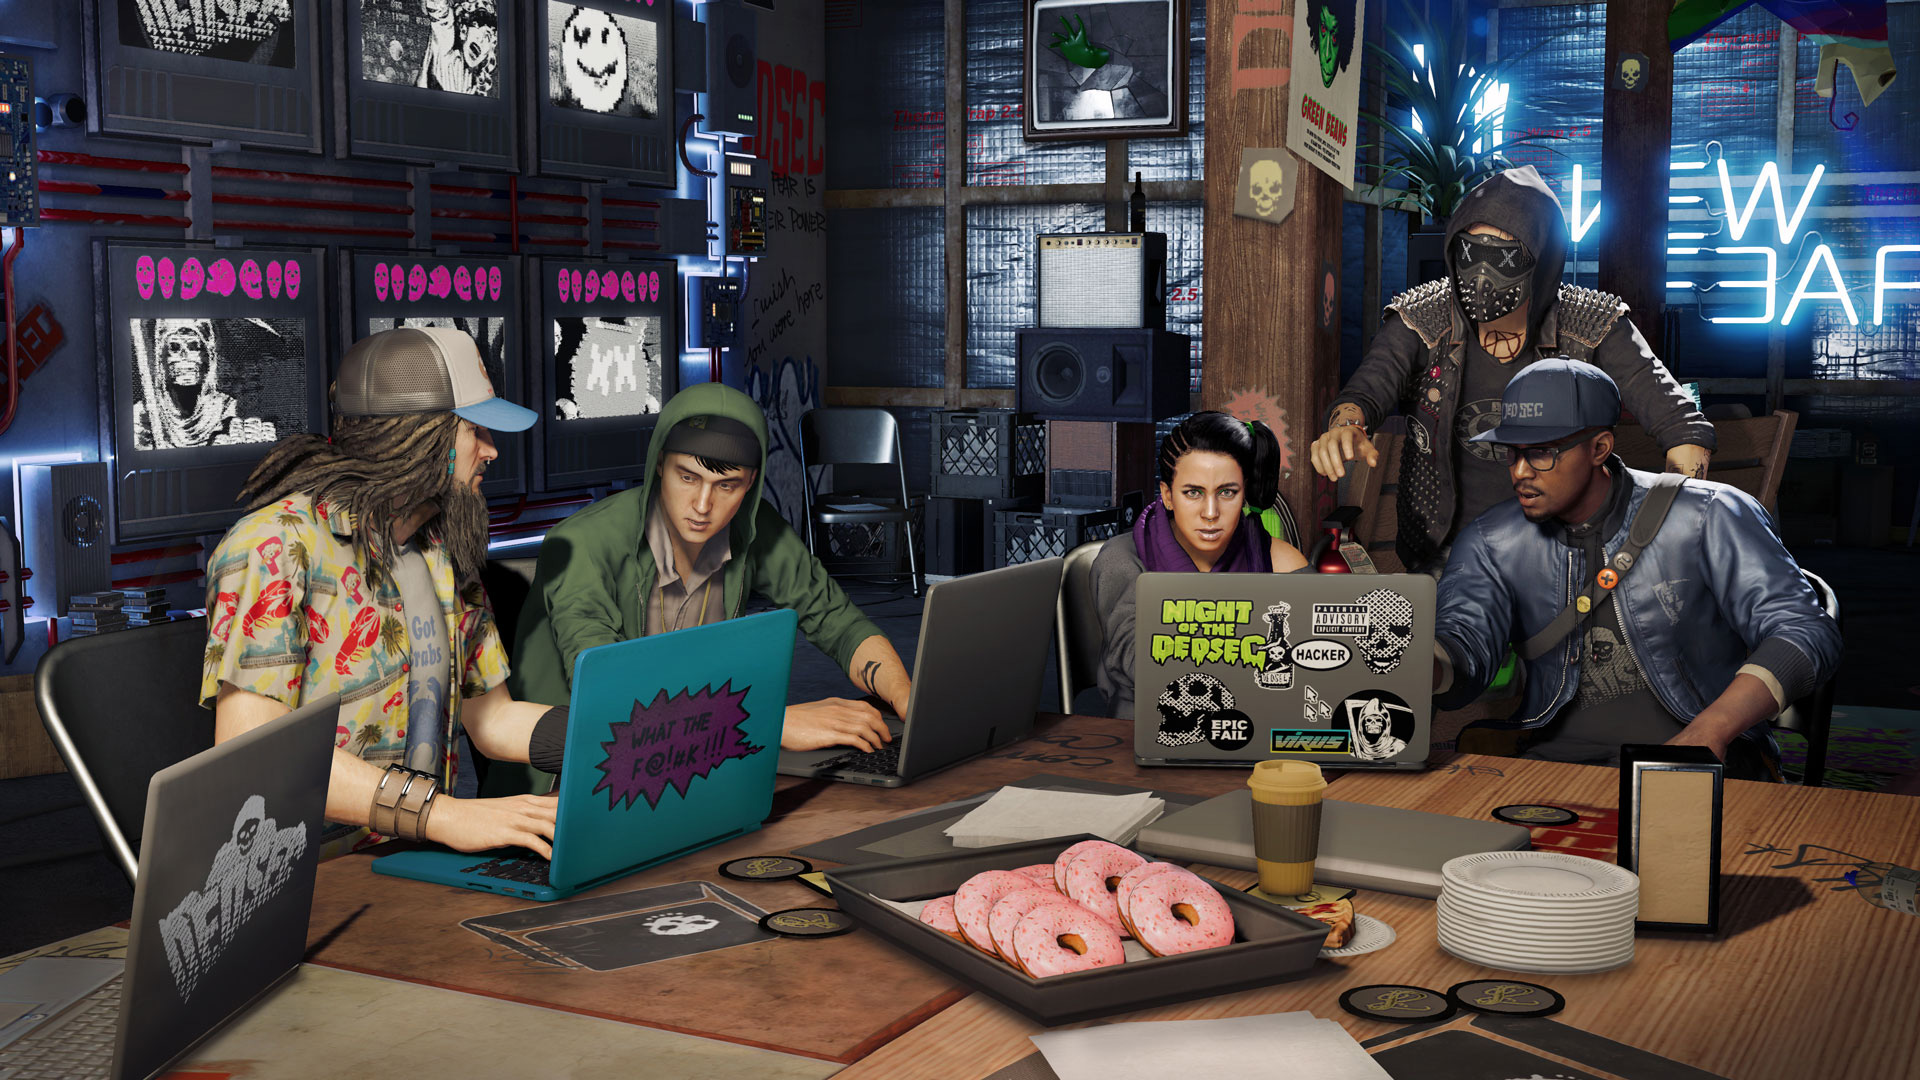 Watch Dogs 2 is getting a four-player Party mode next week screenshot